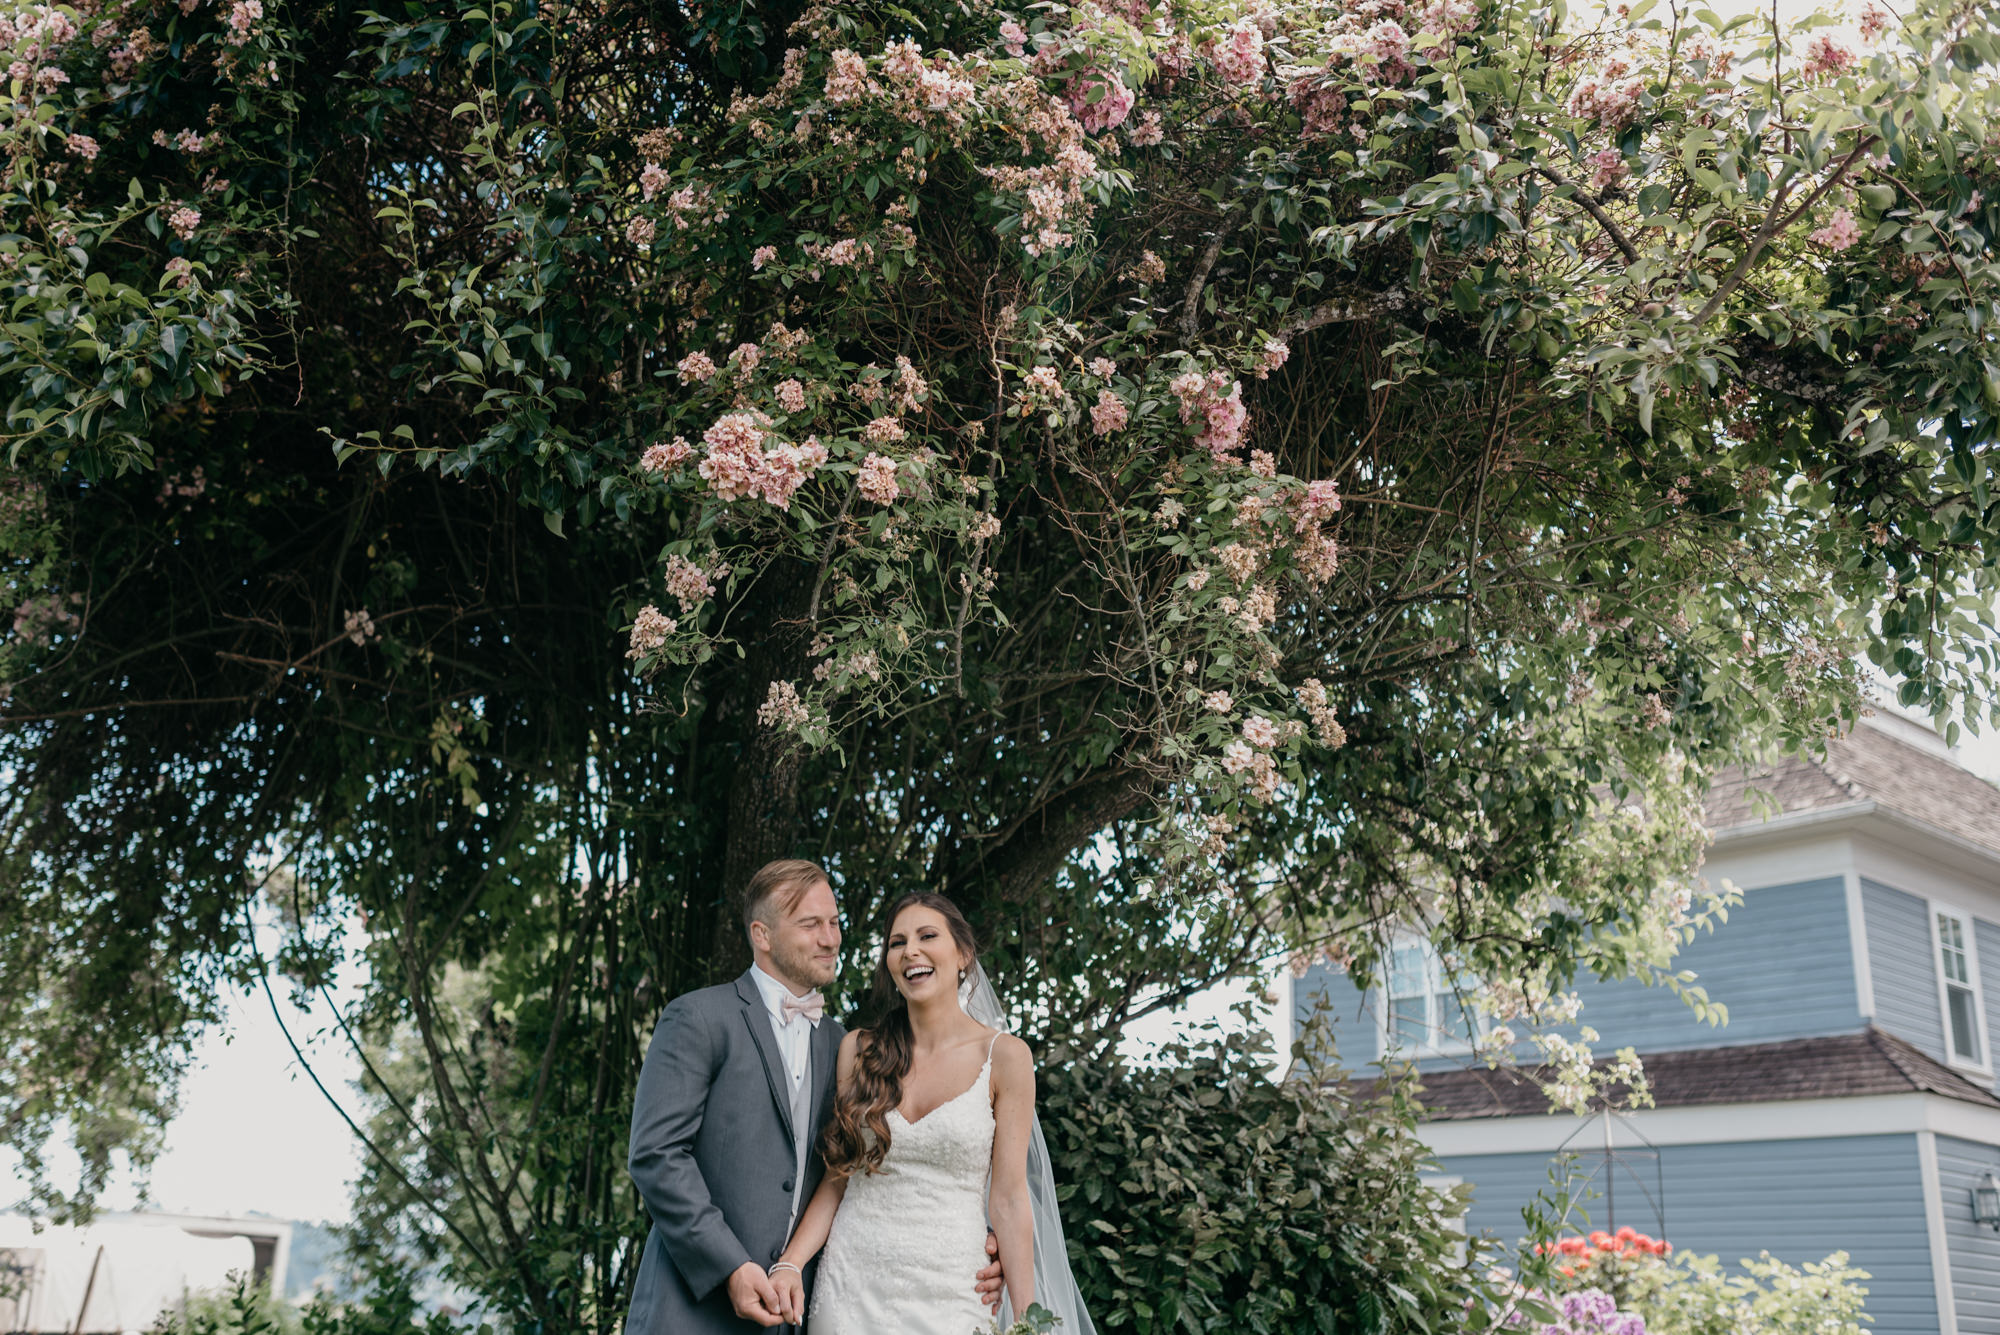 87-lake-oswego-wedding-portland-couple-rose-tree.jpg